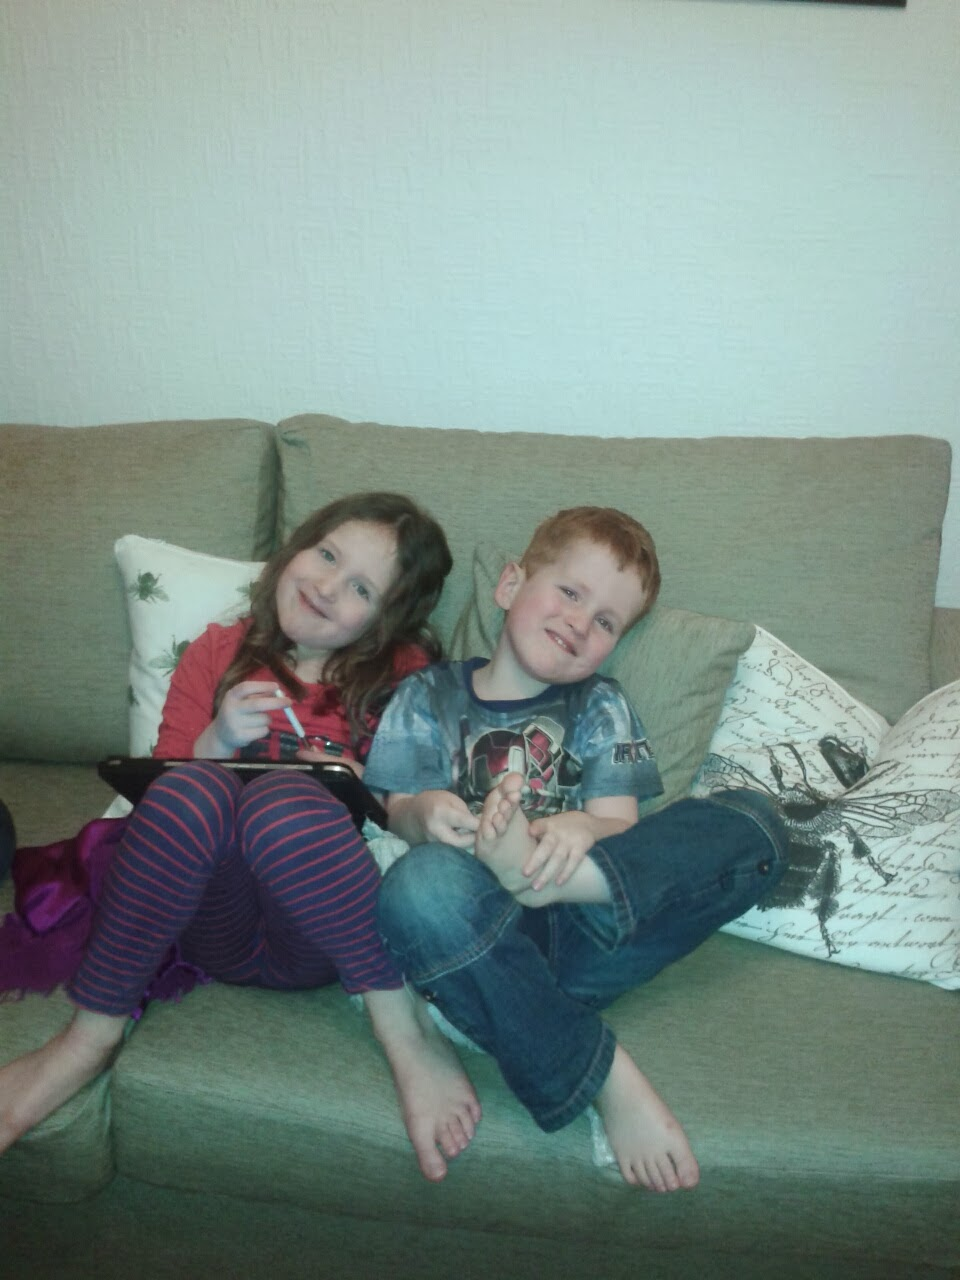 Caitlin & Ieuan on the sofa